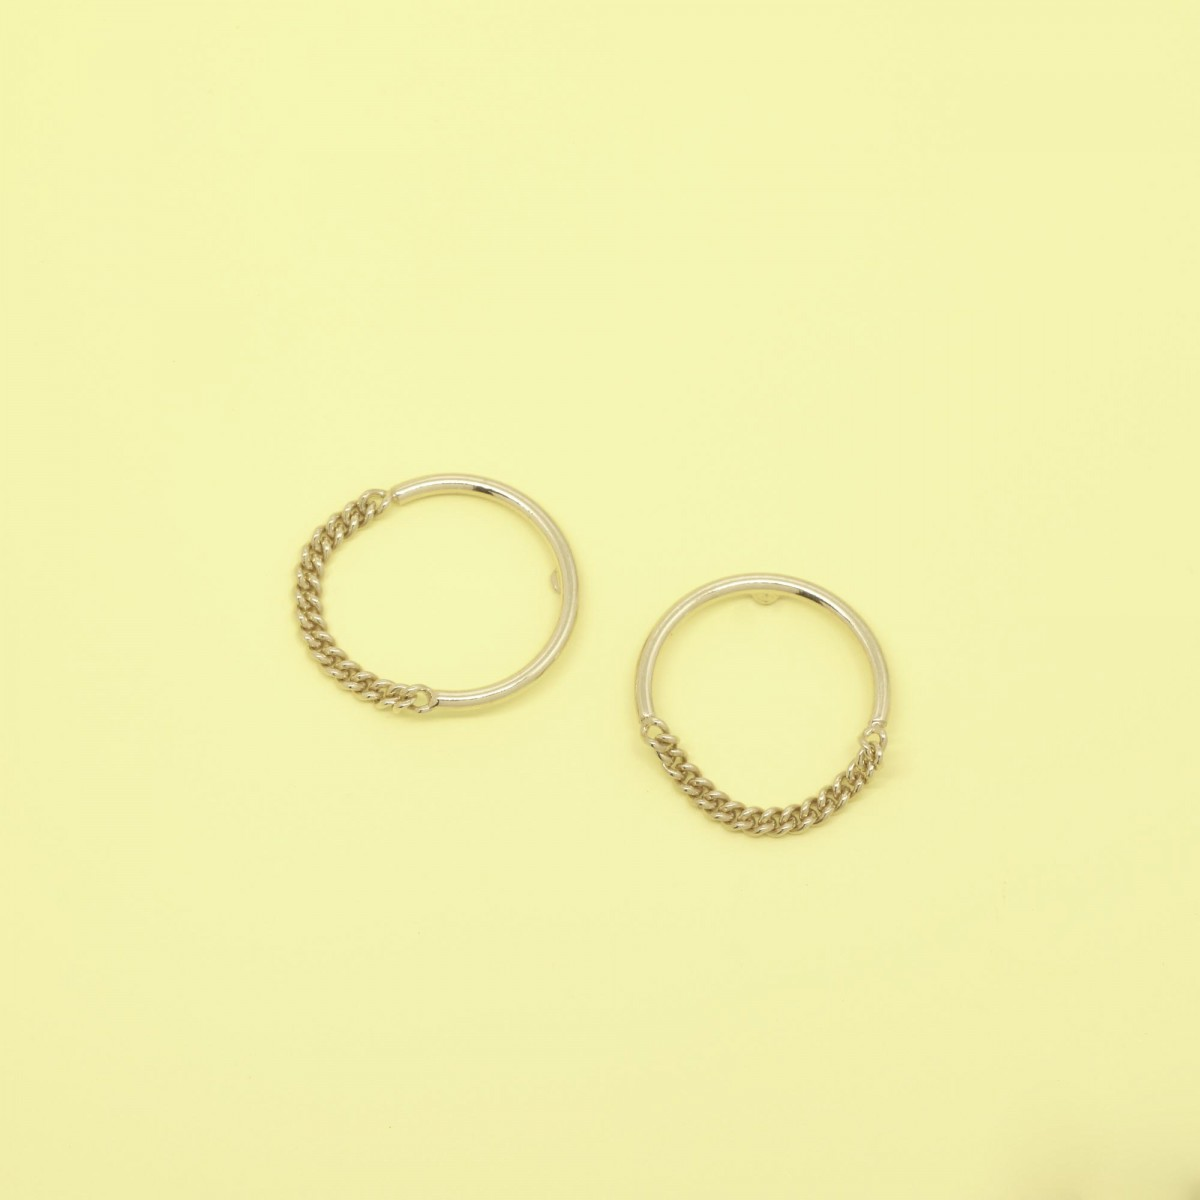 fejn jewelry - Ohrring 'circle chain'